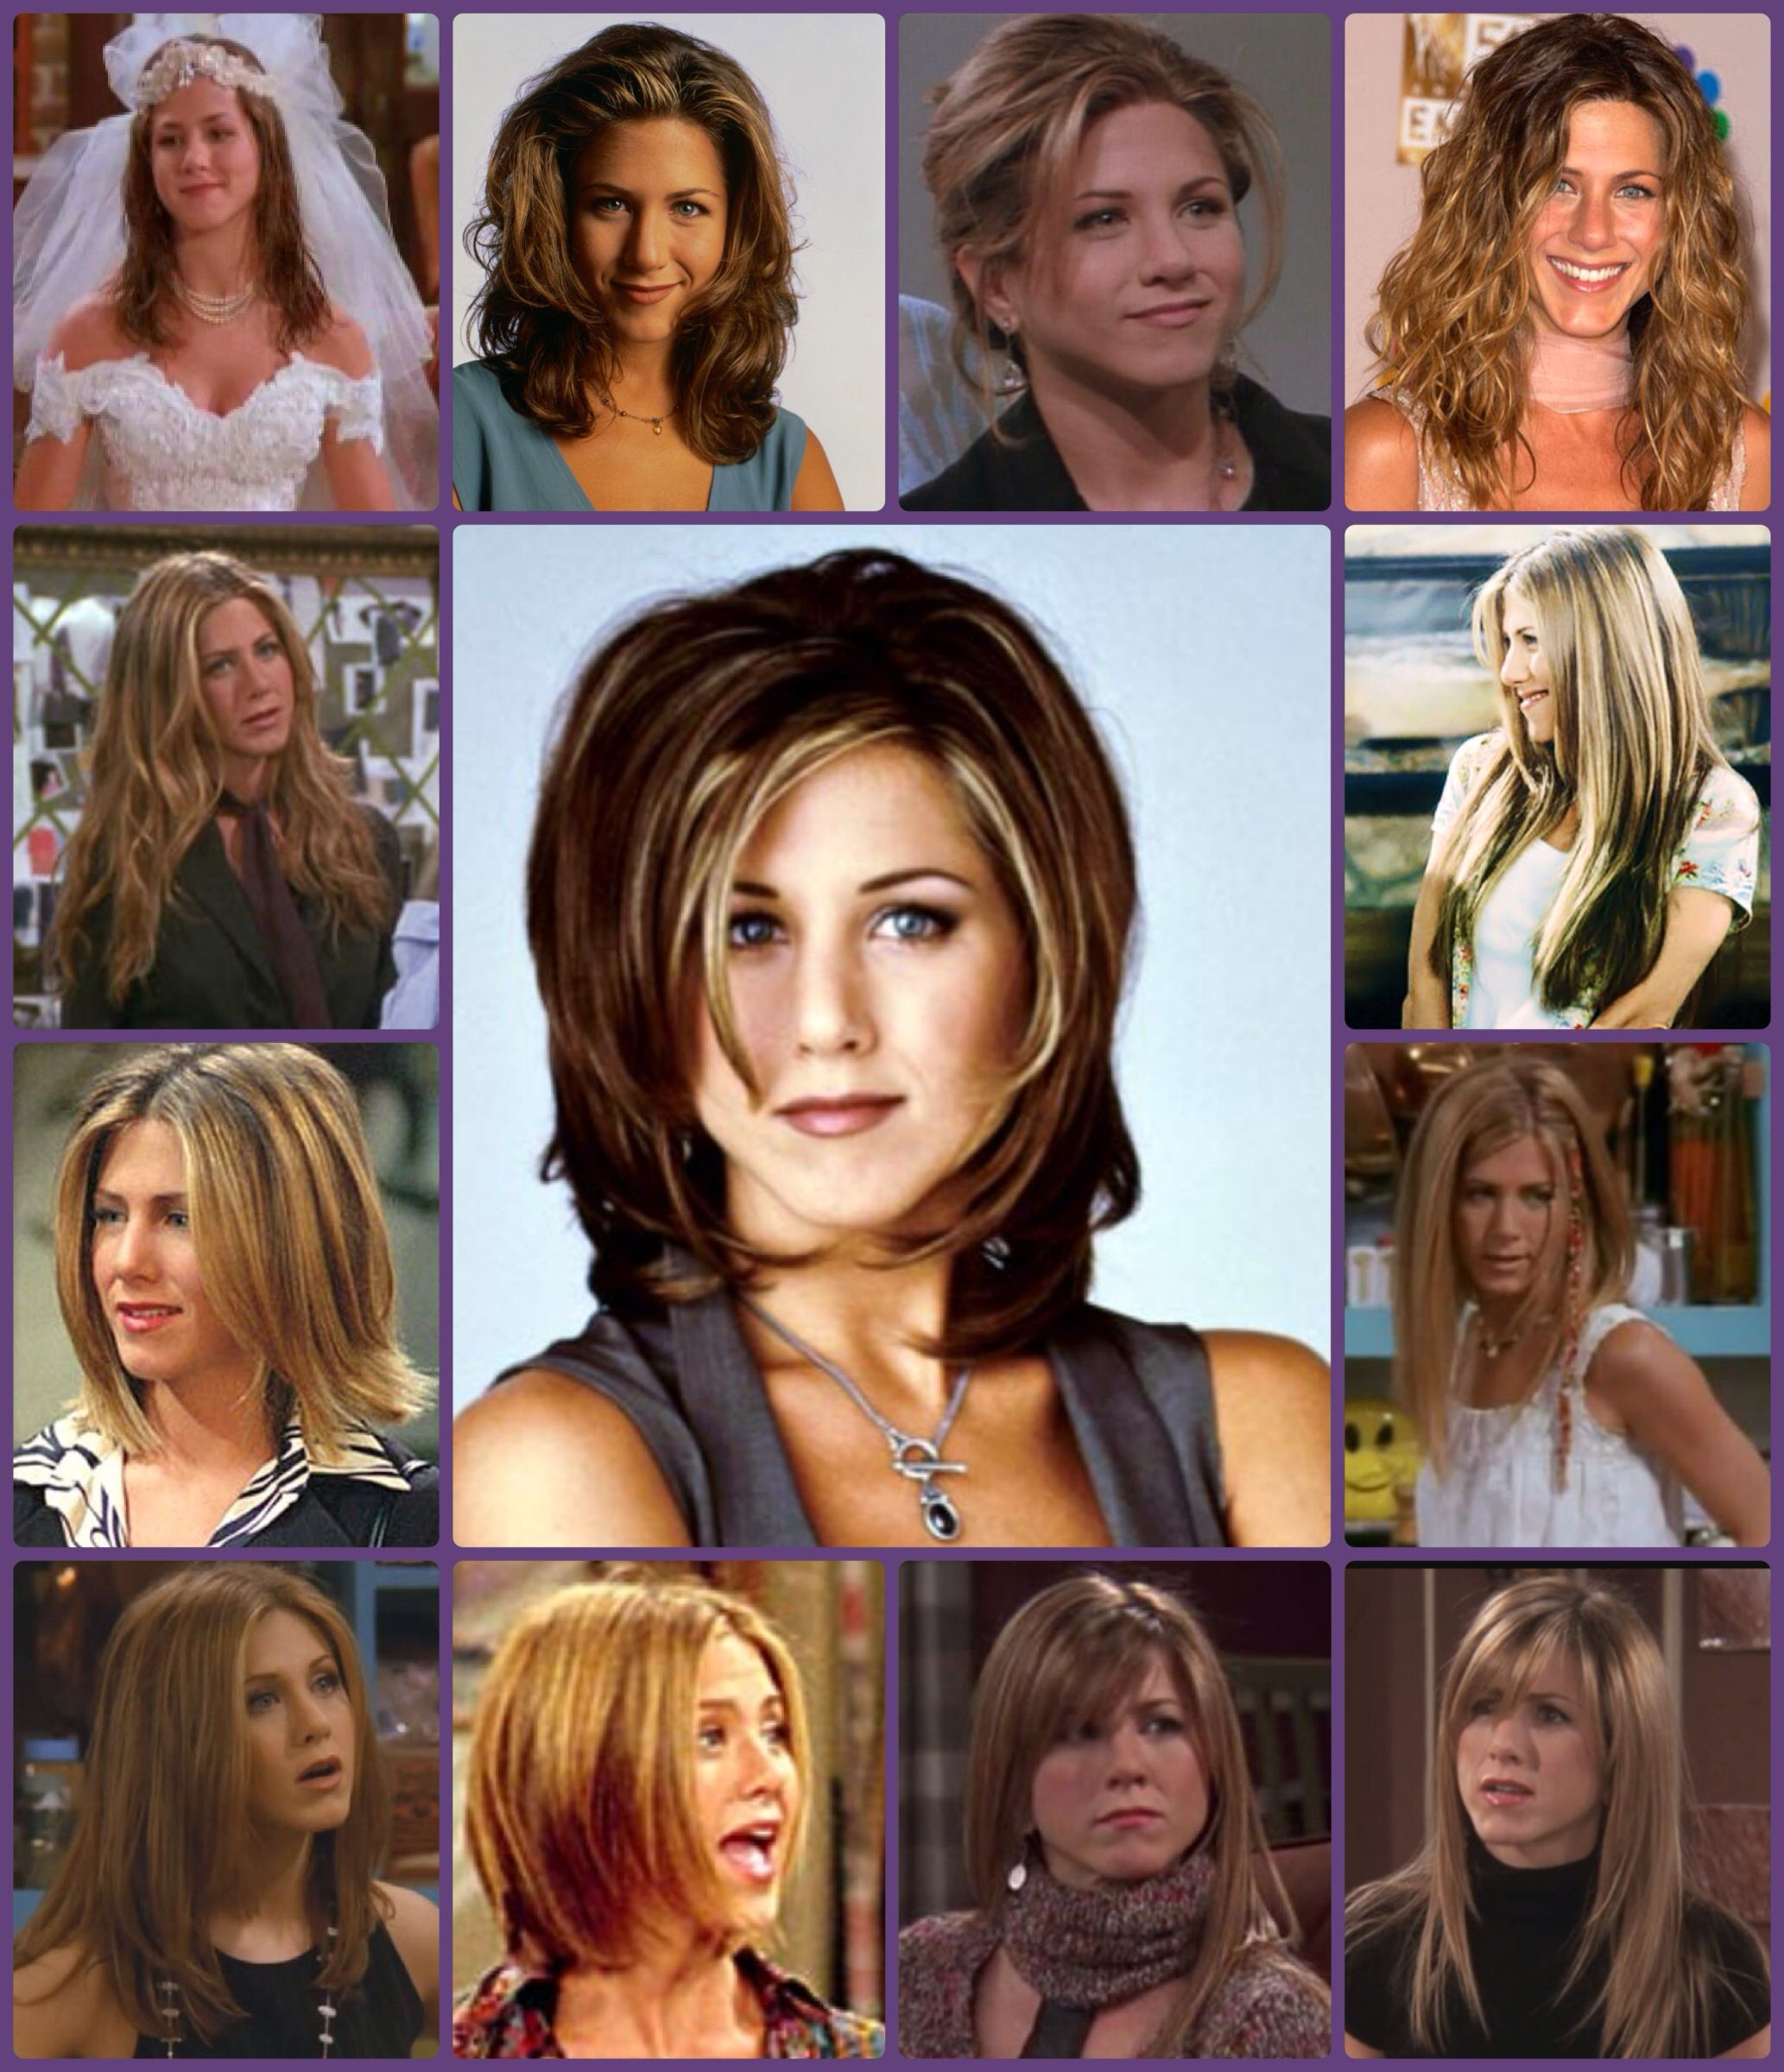 Evolution Of The Rachel From Pre Iconic Style To The Final Episode Friends Rachelgreen Jennifera Jennifer Aniston Hair Jennifer Aniston Style Hair Styles